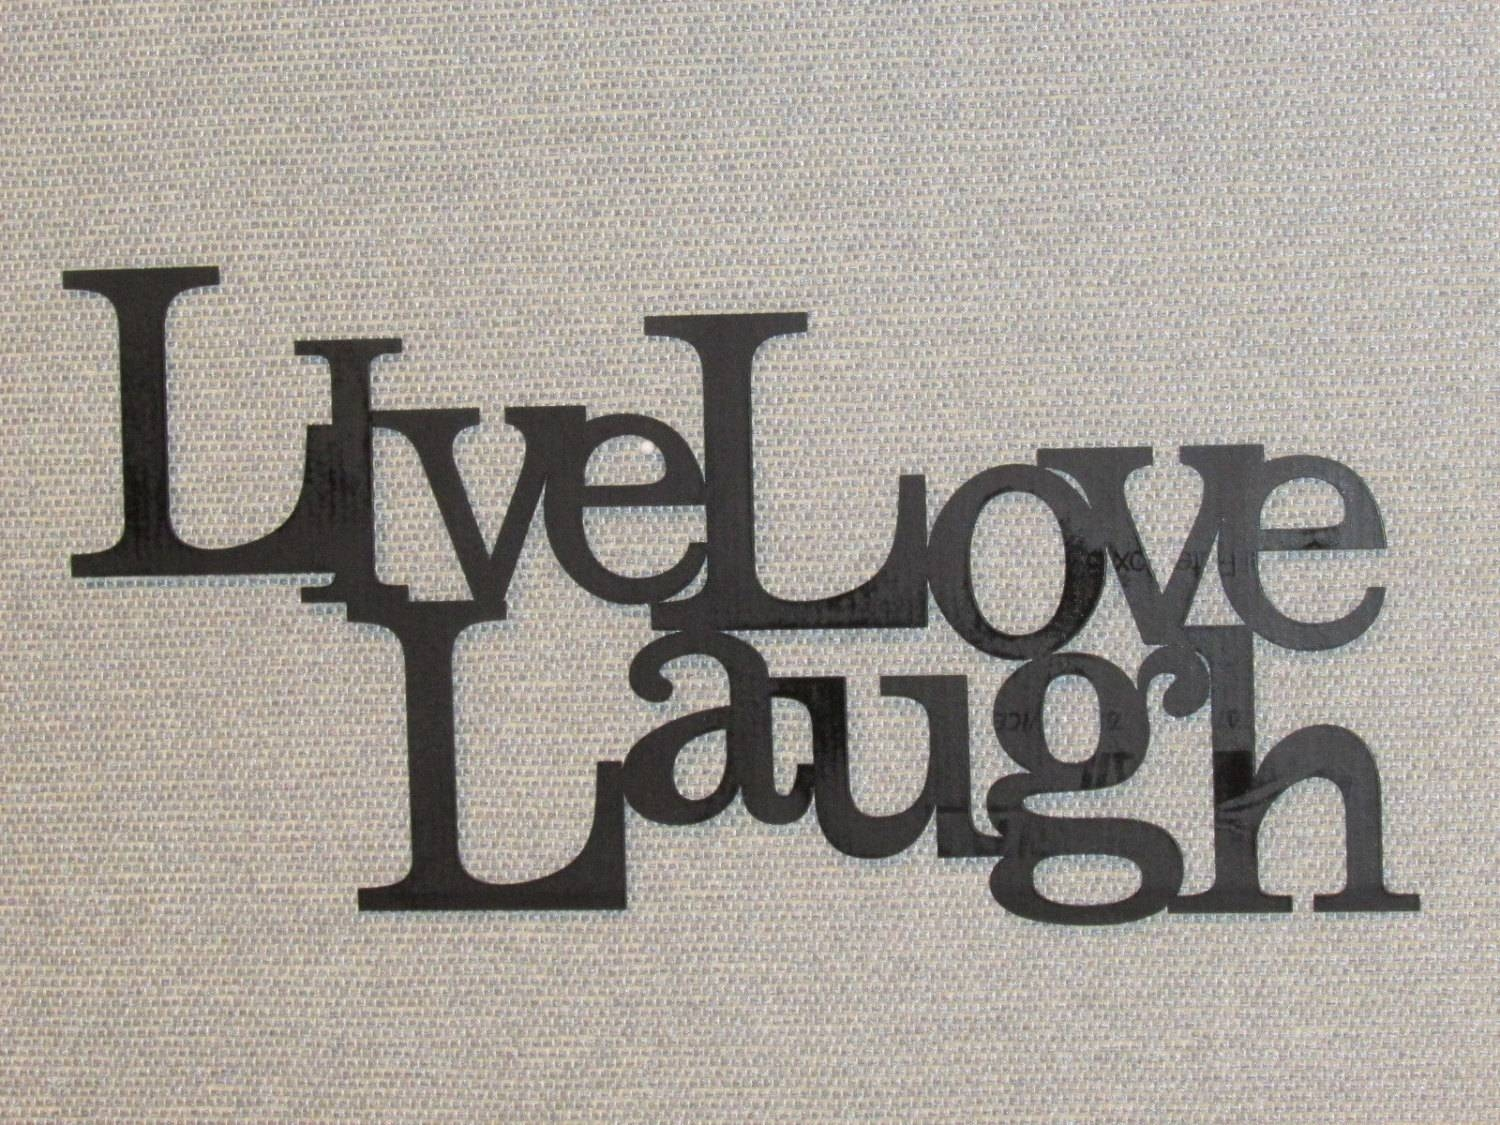 Live Laugh Love Wood Word Art Sign Wall Decor Black Intended For 2017 Live Laugh Love Metal Wall Art (View 5 of 20)